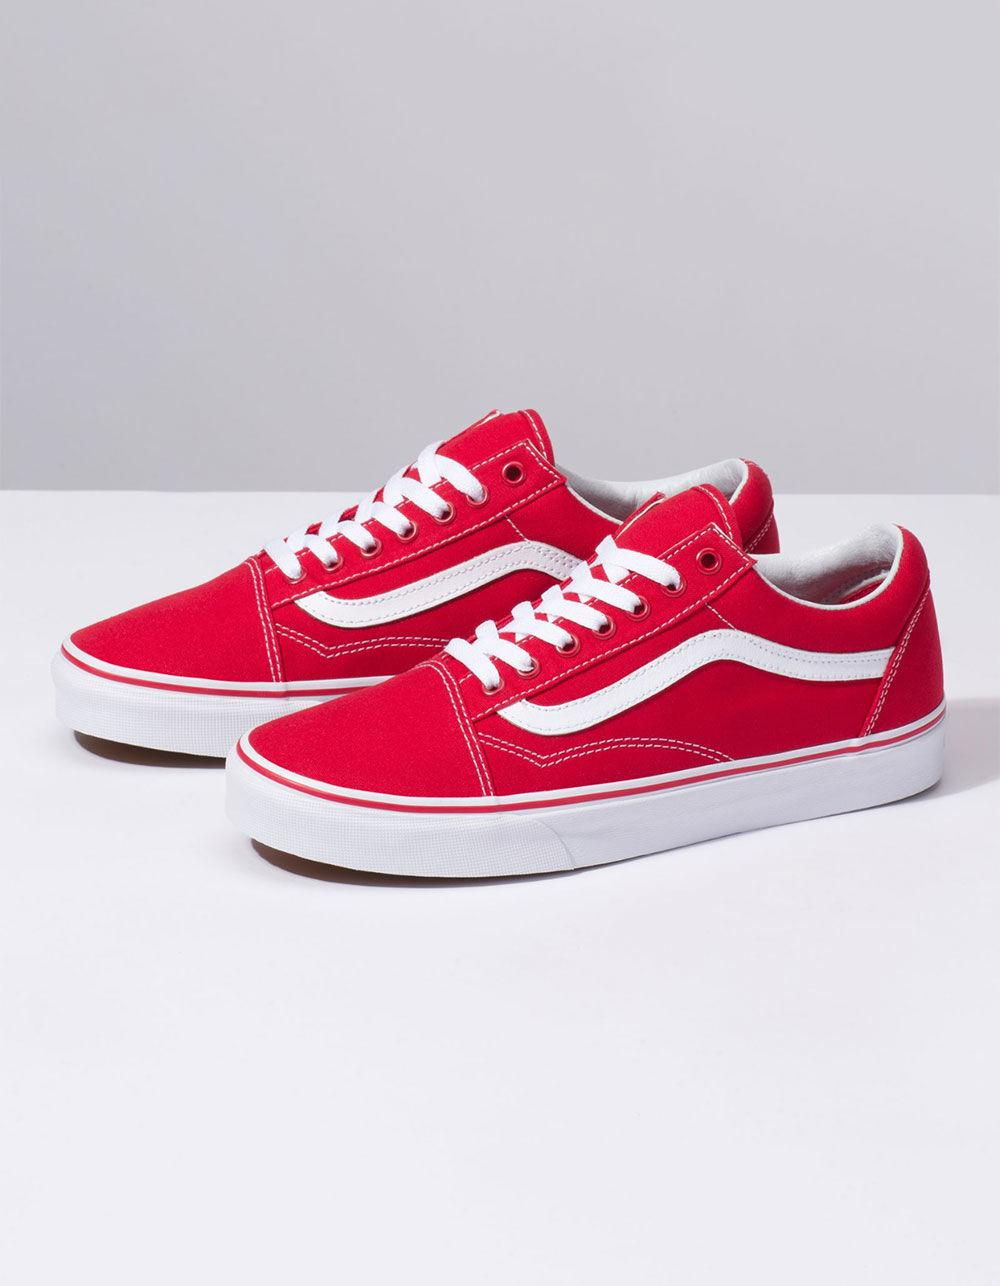 24c7622489 Lyst - Vans Canvas Old Skool Formula One Shoes in Red